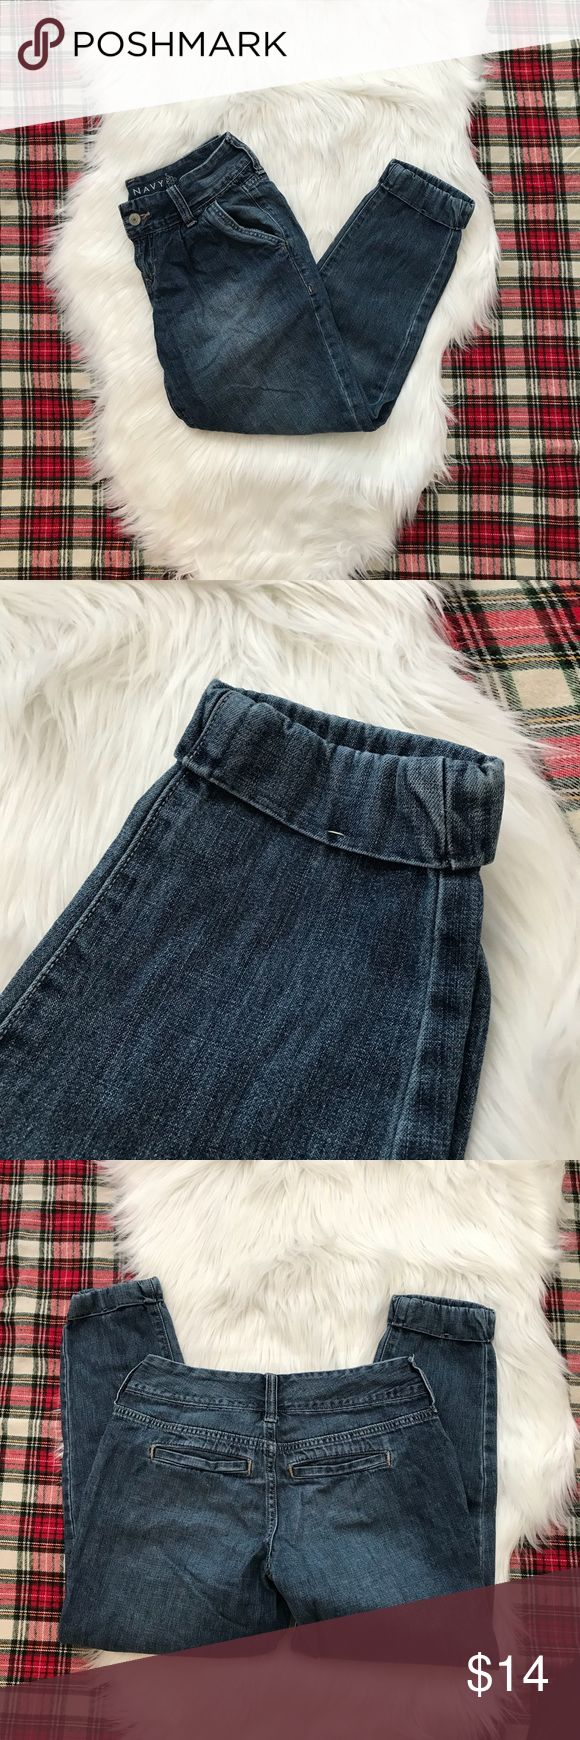 Old Navy Cropped Jeans Cropped jeans with cinched bottom. These are a cute twist on a skinny jean and will add a little flare to any outfit ! Size 0. Old Navy Jeans Ankle & Cropped